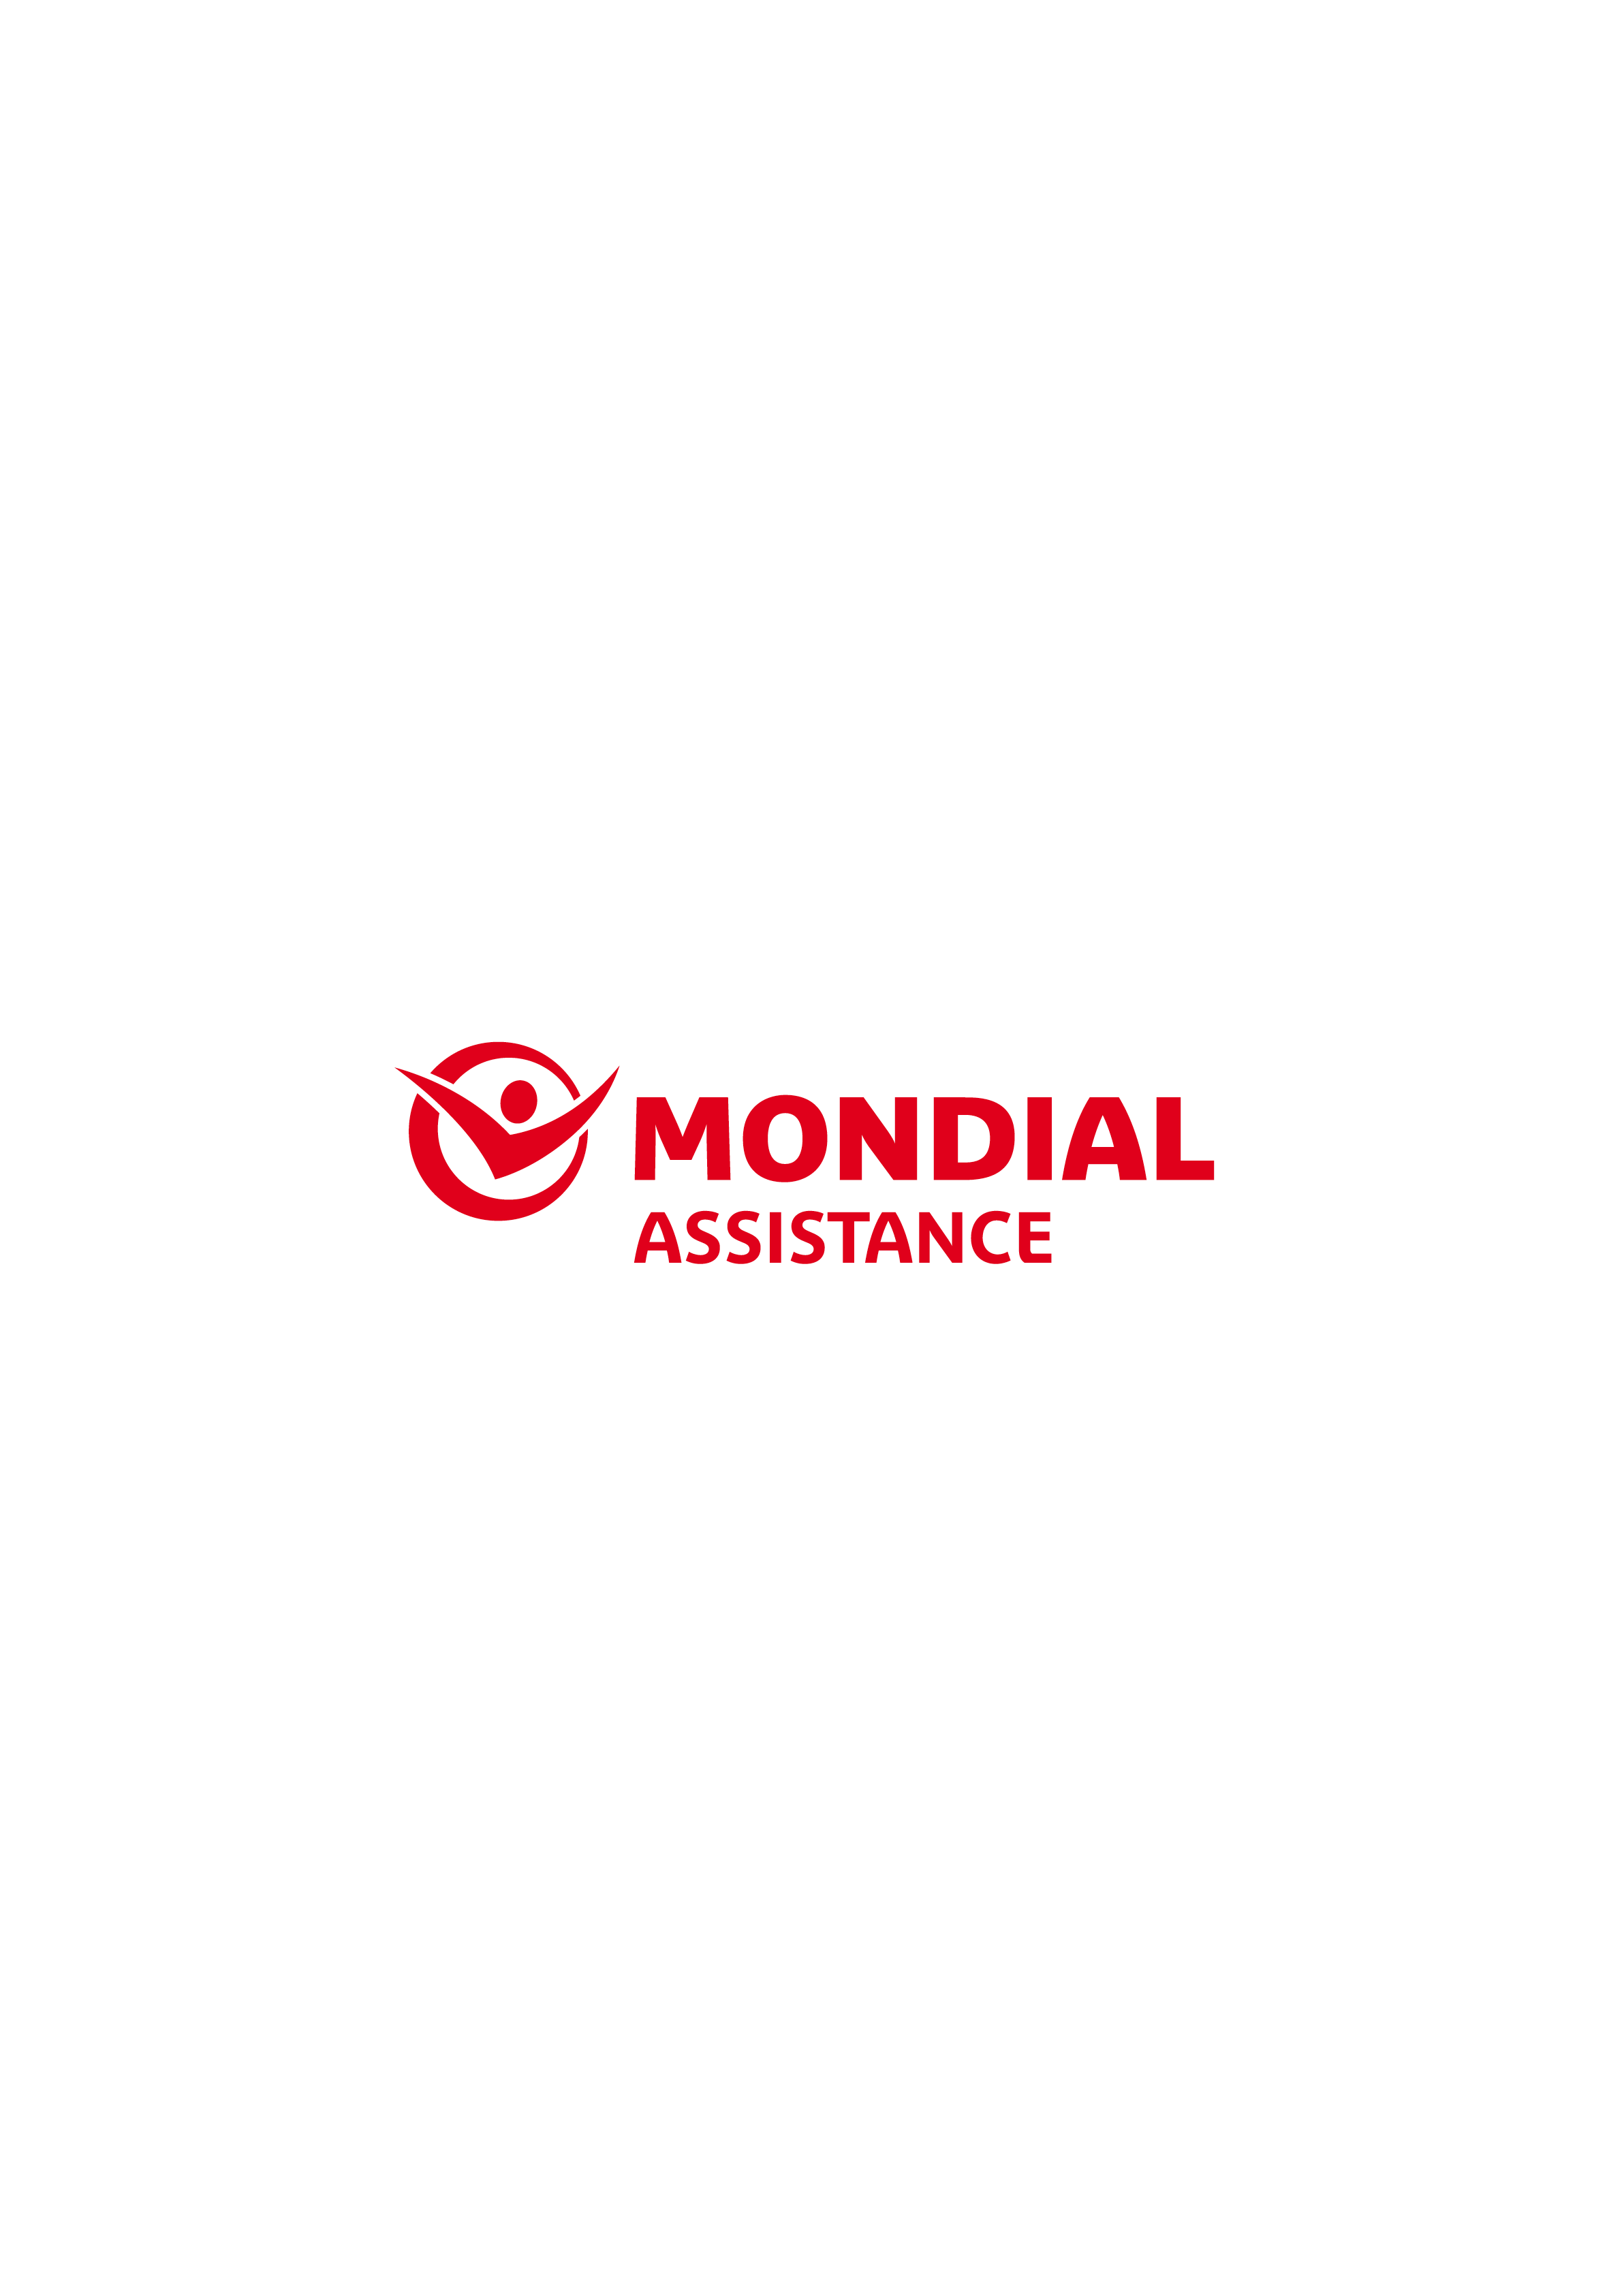 Mondial Red Logo White Lozenge